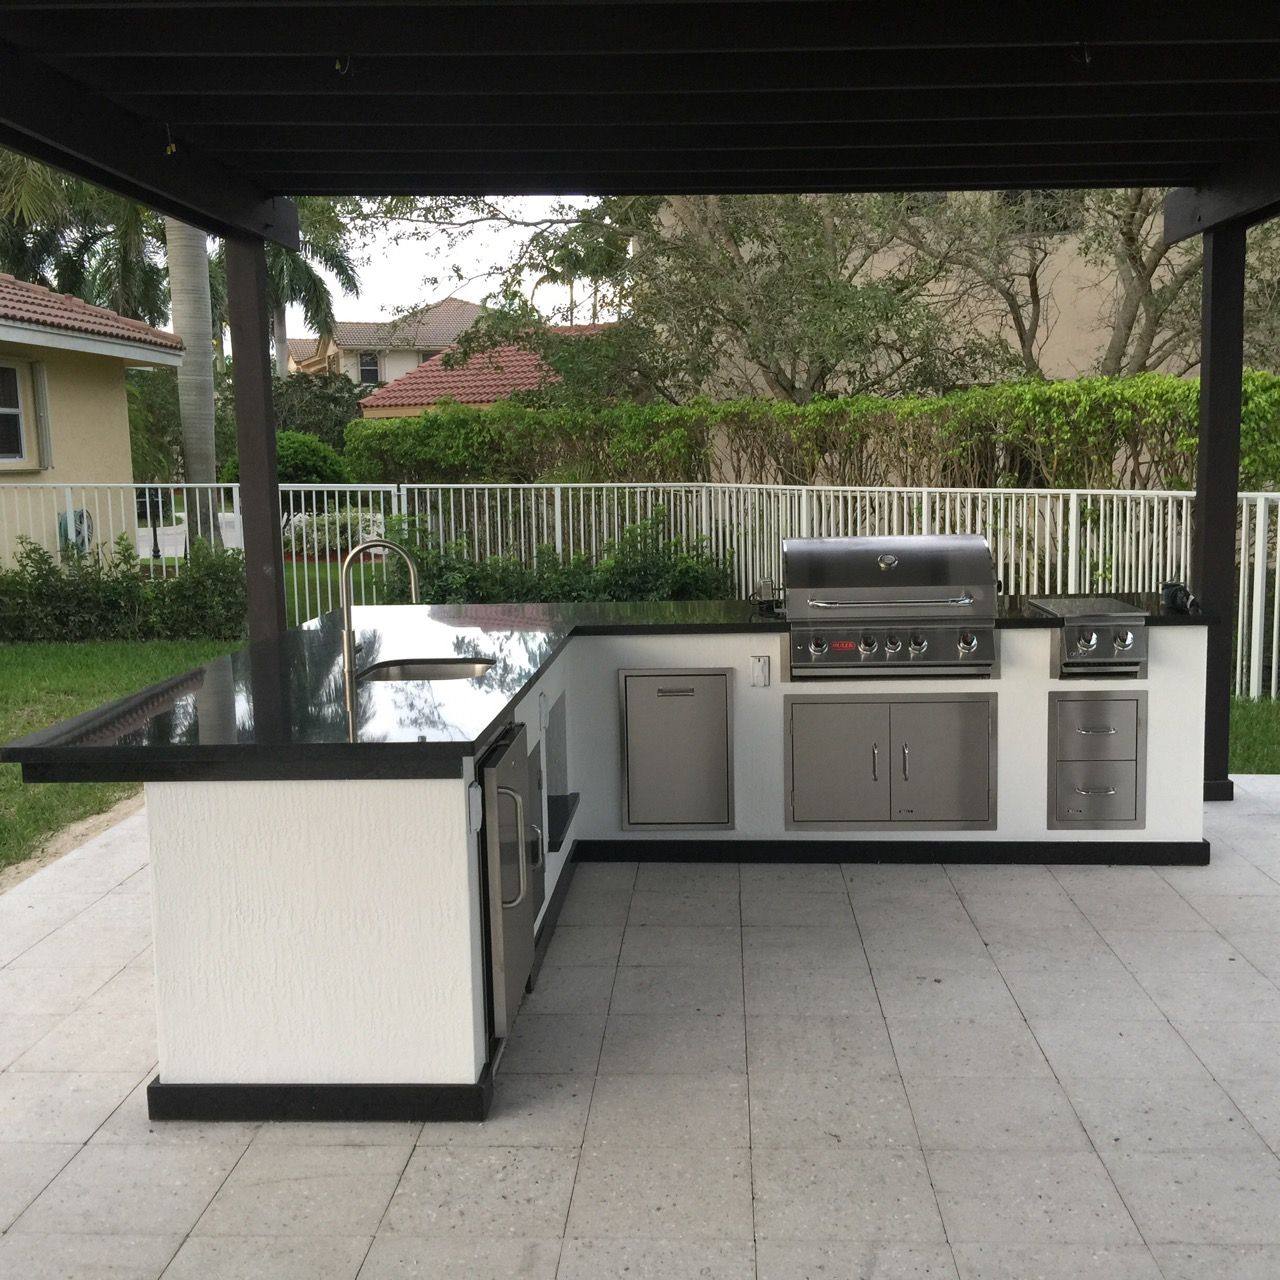 Luxapatio Is South Florida S First Choice For Outdoor Kitchens And Outdoor Kitchen Appliances Outdoor Kitchen Outdoor Kitchen Appliances Outdoor Kitchen Design